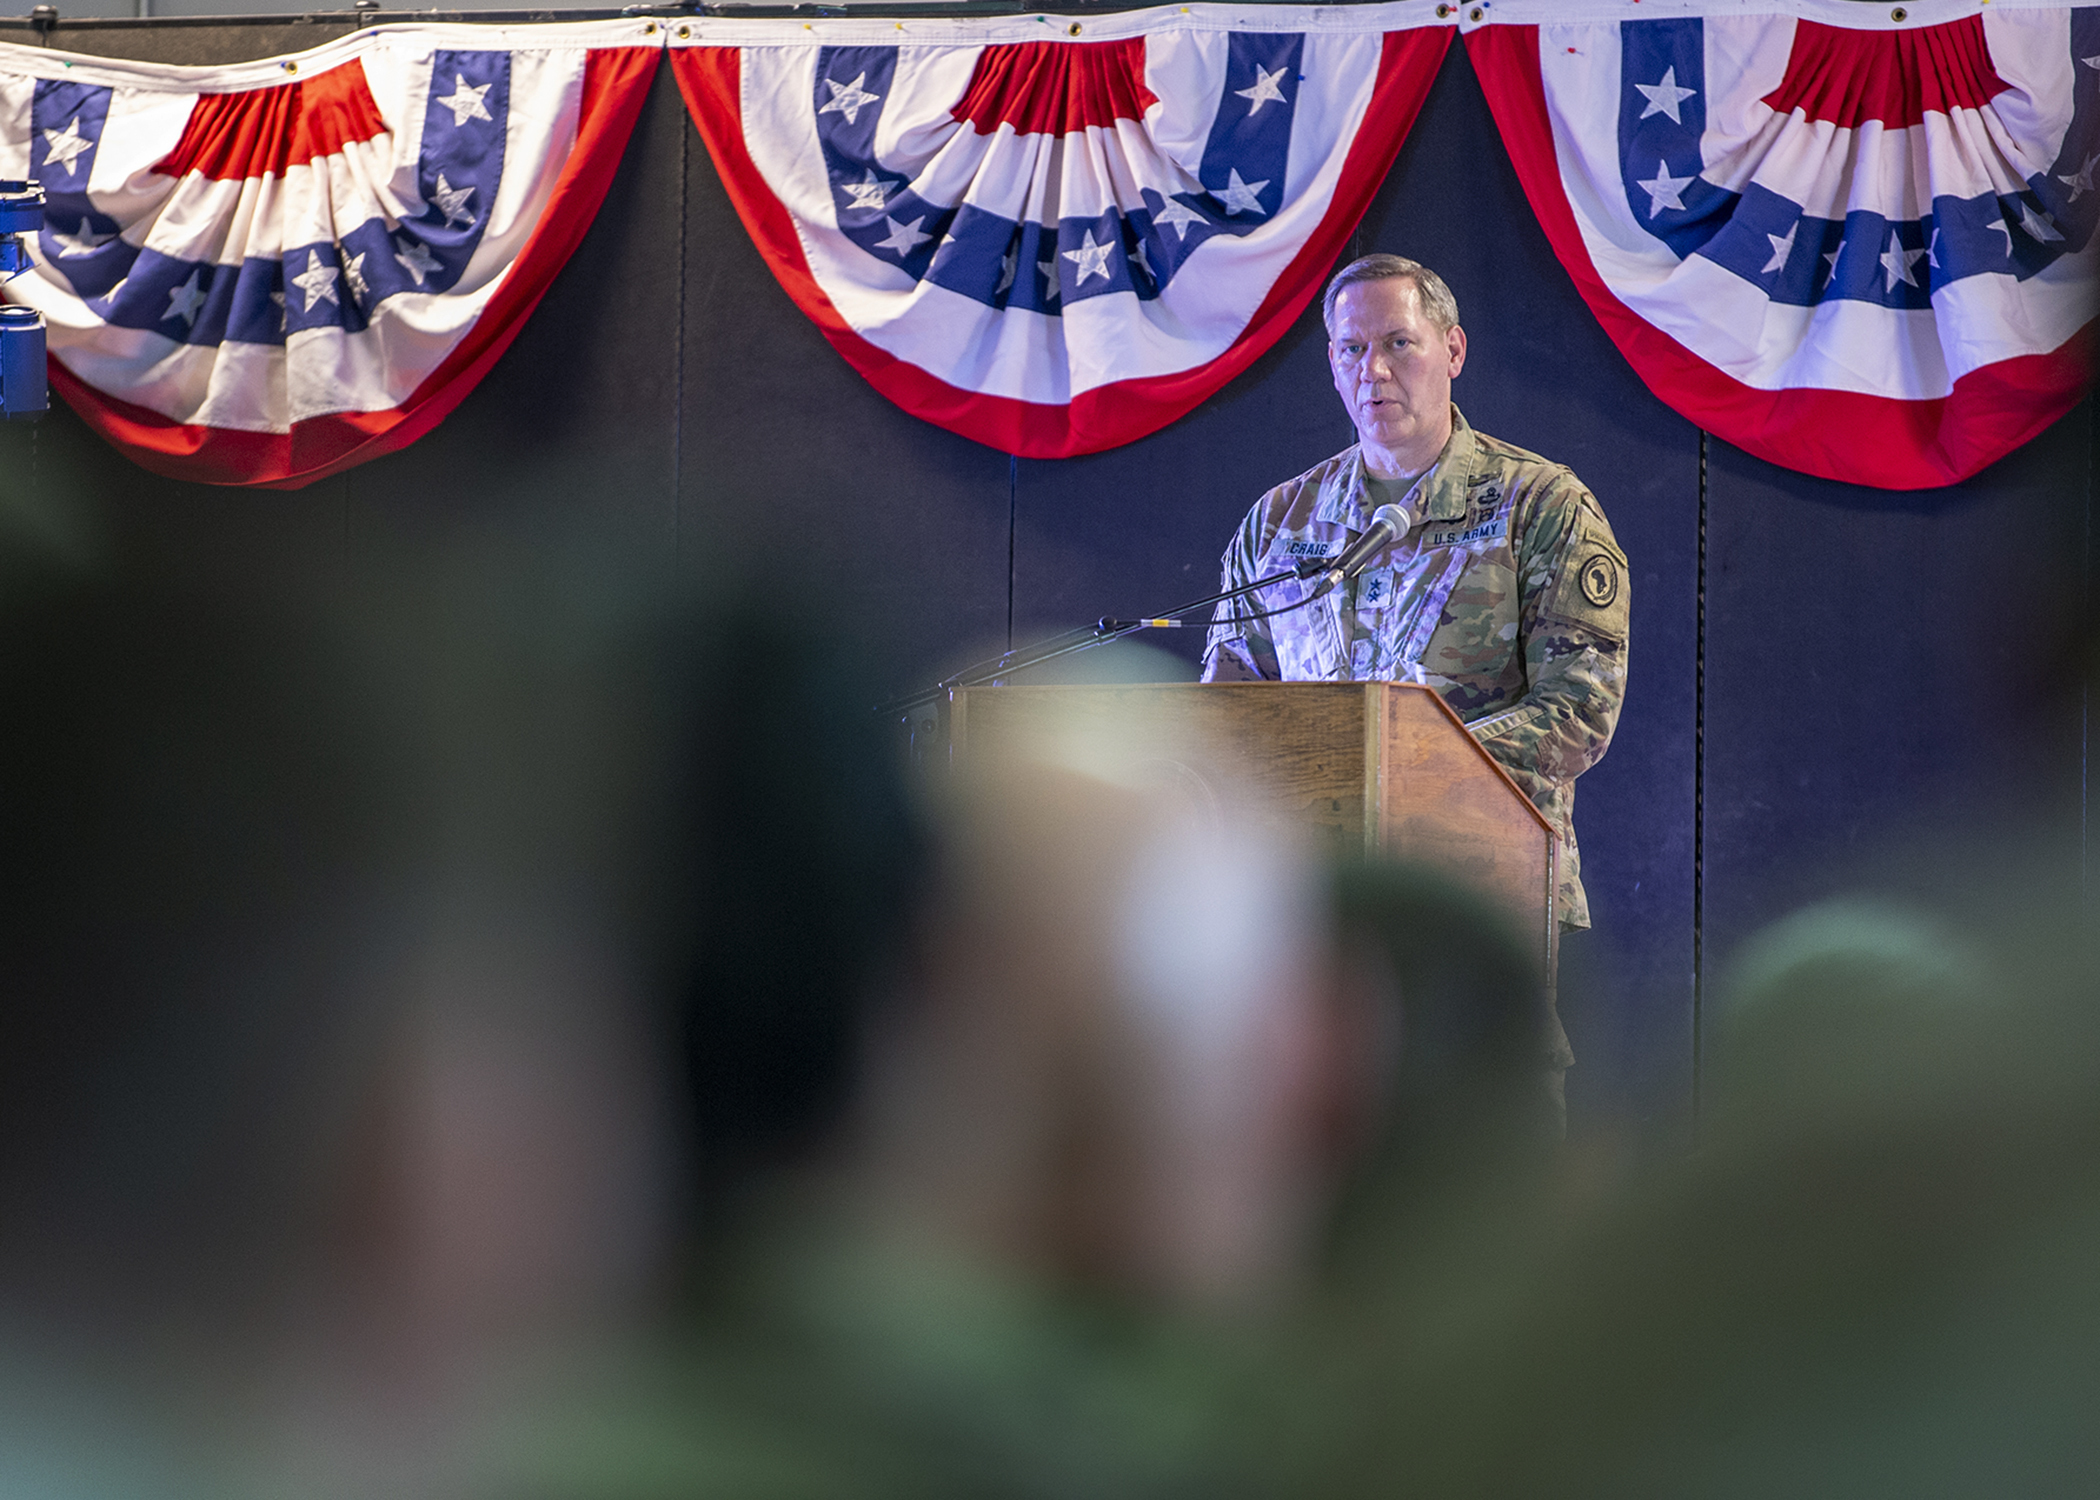 U.S. Army Maj. Gen. James D. Craig, outgoing commanding general of Combined Joint Task Force-Horn of Africa (CJTF-HOA), gives remarks during a change of command ceremony at Camp Lemonnier, Djibouti, June 12, 2019. Craig transferred command to U.S. Army Maj. Gen. Michael D. Turello in the ceremony with U.S. Marine Corps Gen. Thomas Waldhauser, commander of U.S. Africa Command, as the presiding officer. (U.S. Air Force photo by Tech. Sgt. Shawn Nickel)